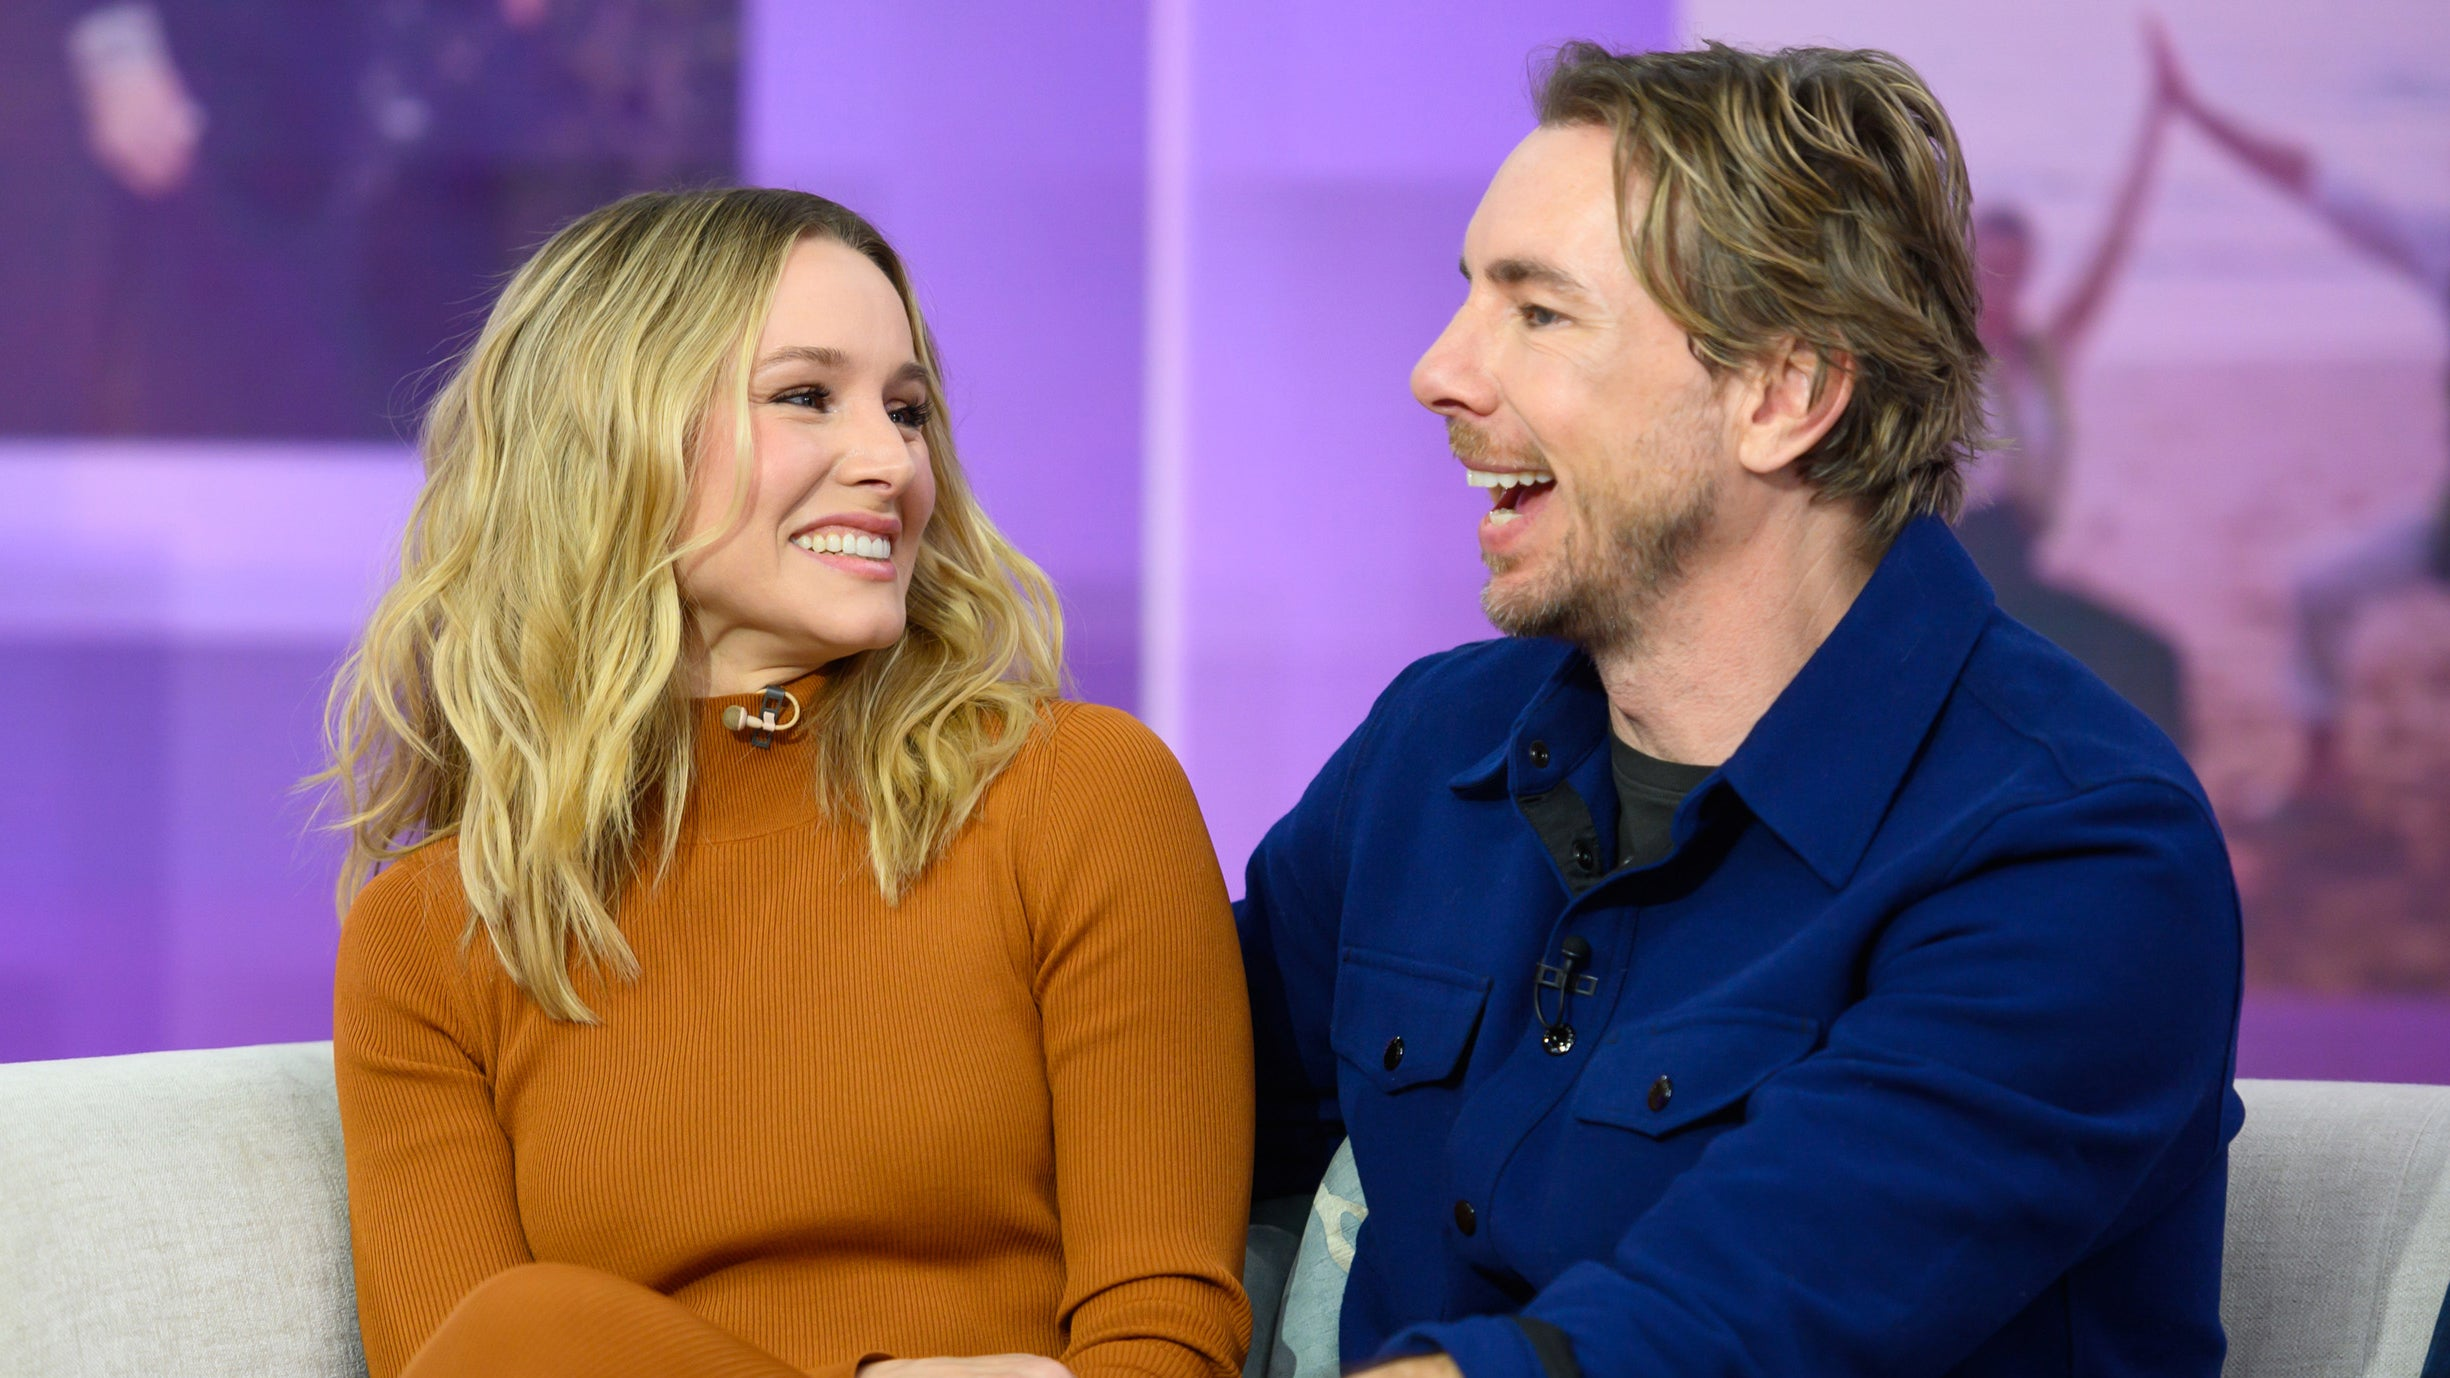 Dax Shepard and Kristen Bell's Daughter Snaps Candid Pic of the Couple Cuddled Up on the Couch